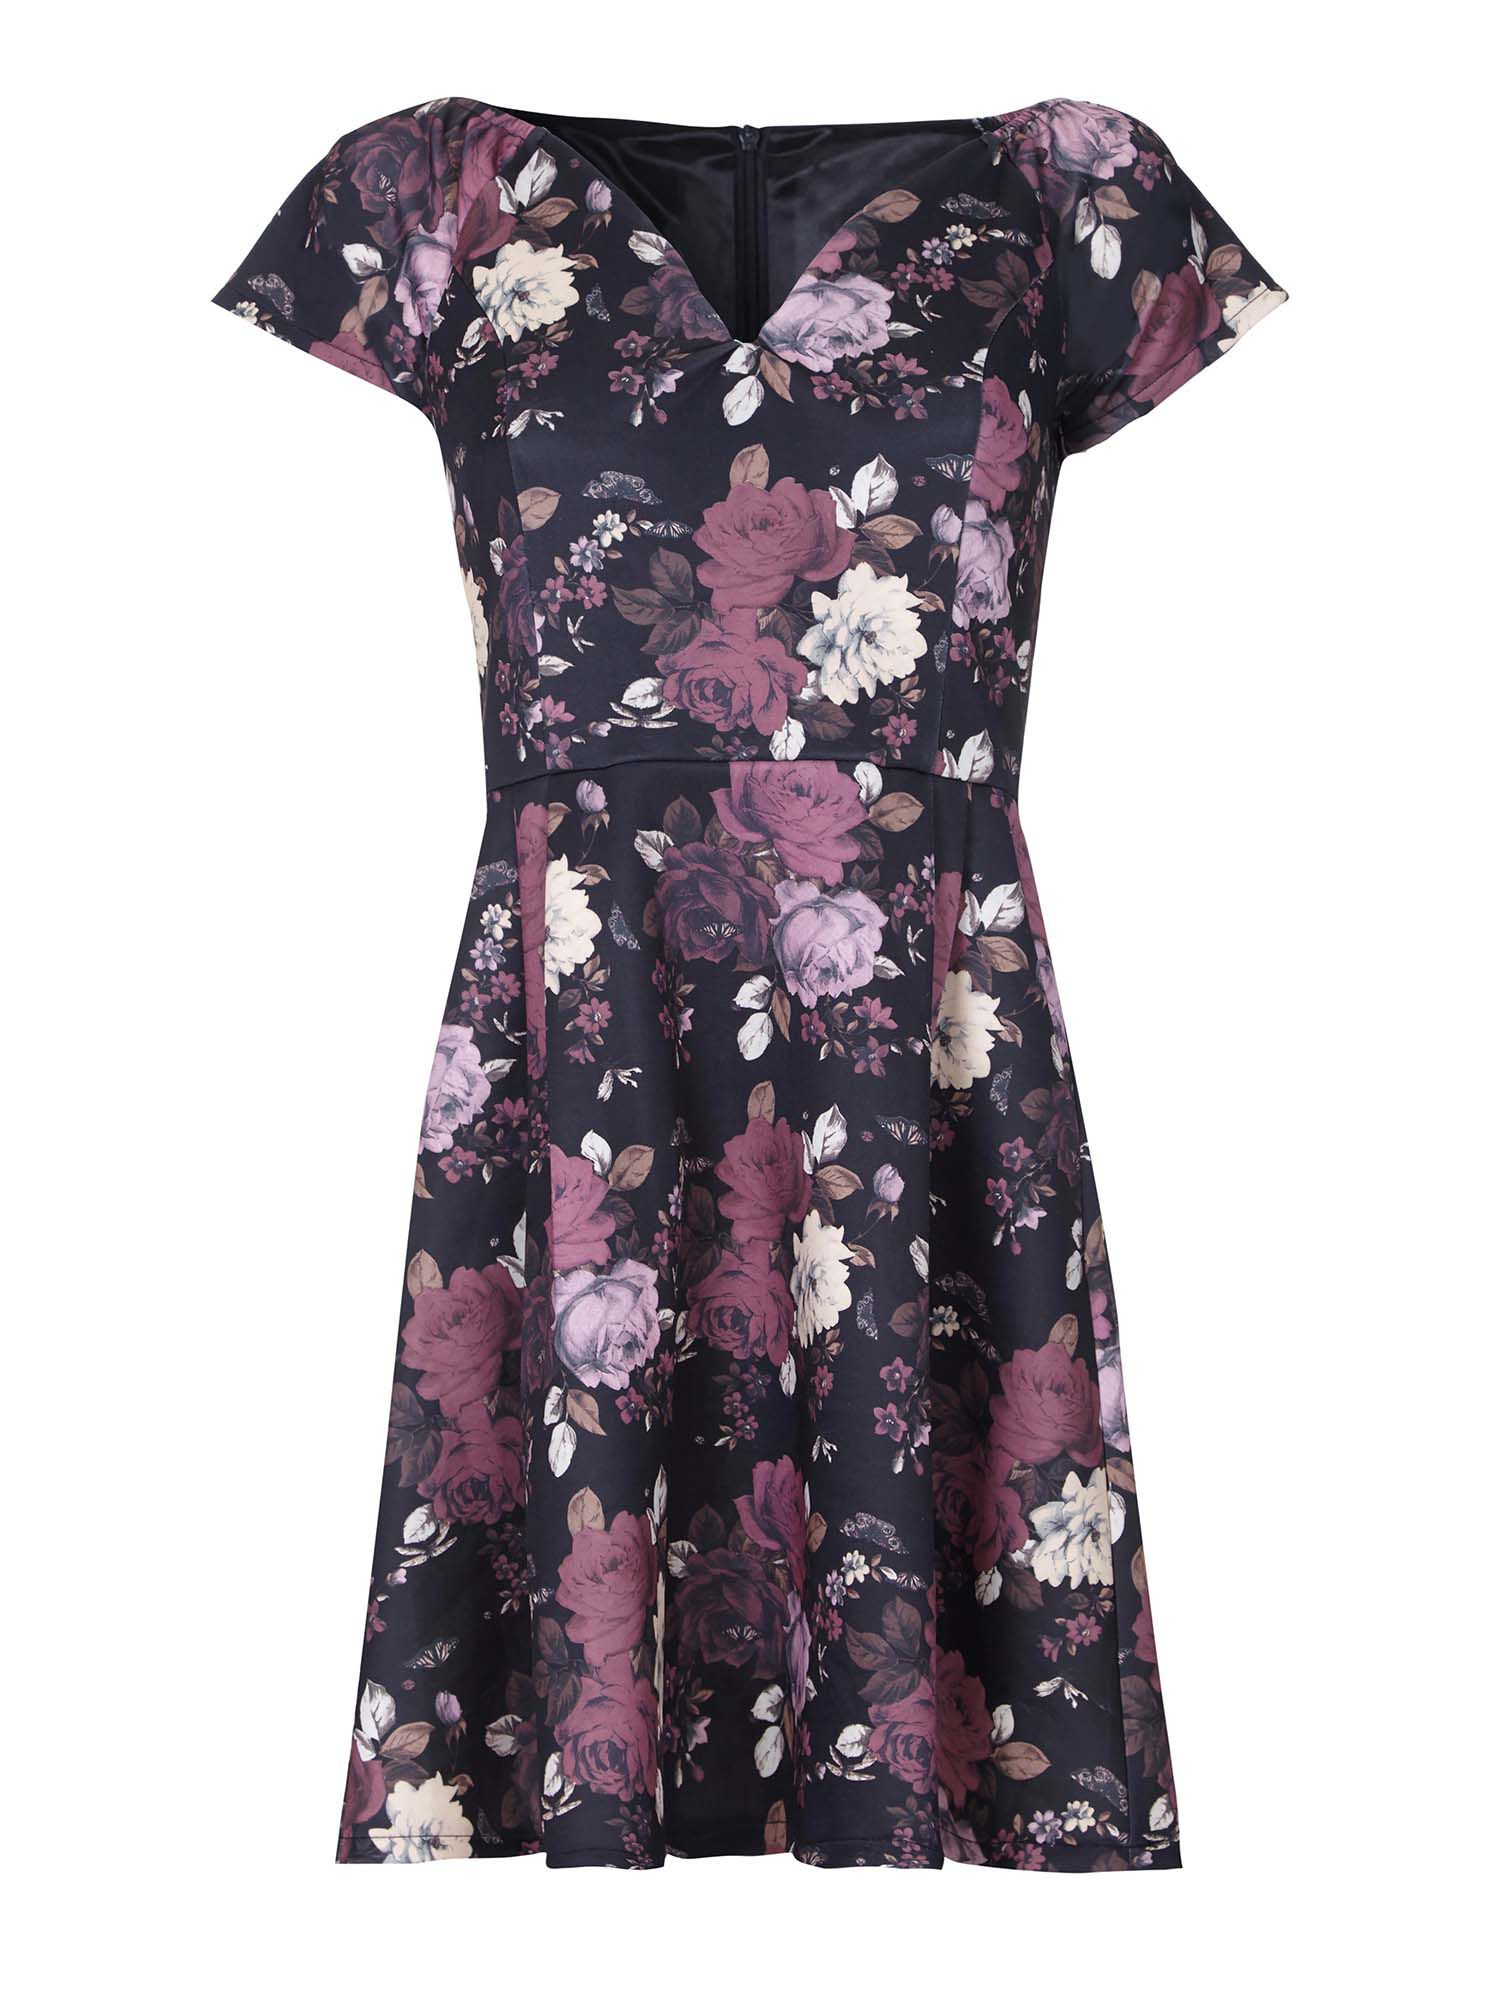 Yumi Floral Print Bardot Party Dress, Multi-Coloured